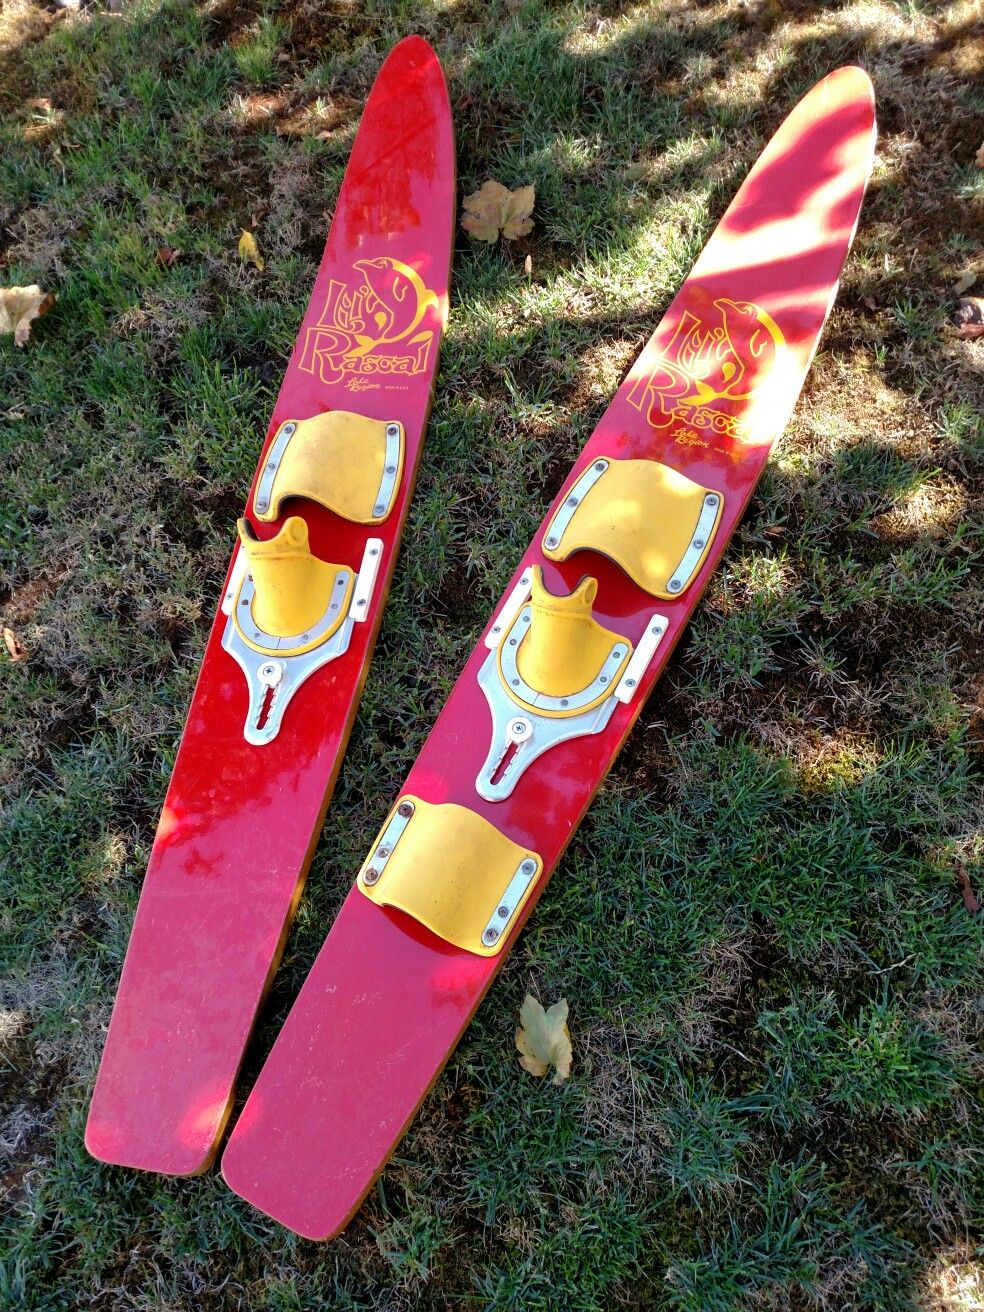 Rascal, vintage, water-ski for interior or exterior decor. Beautiful color and great display. Expected wear, intact.